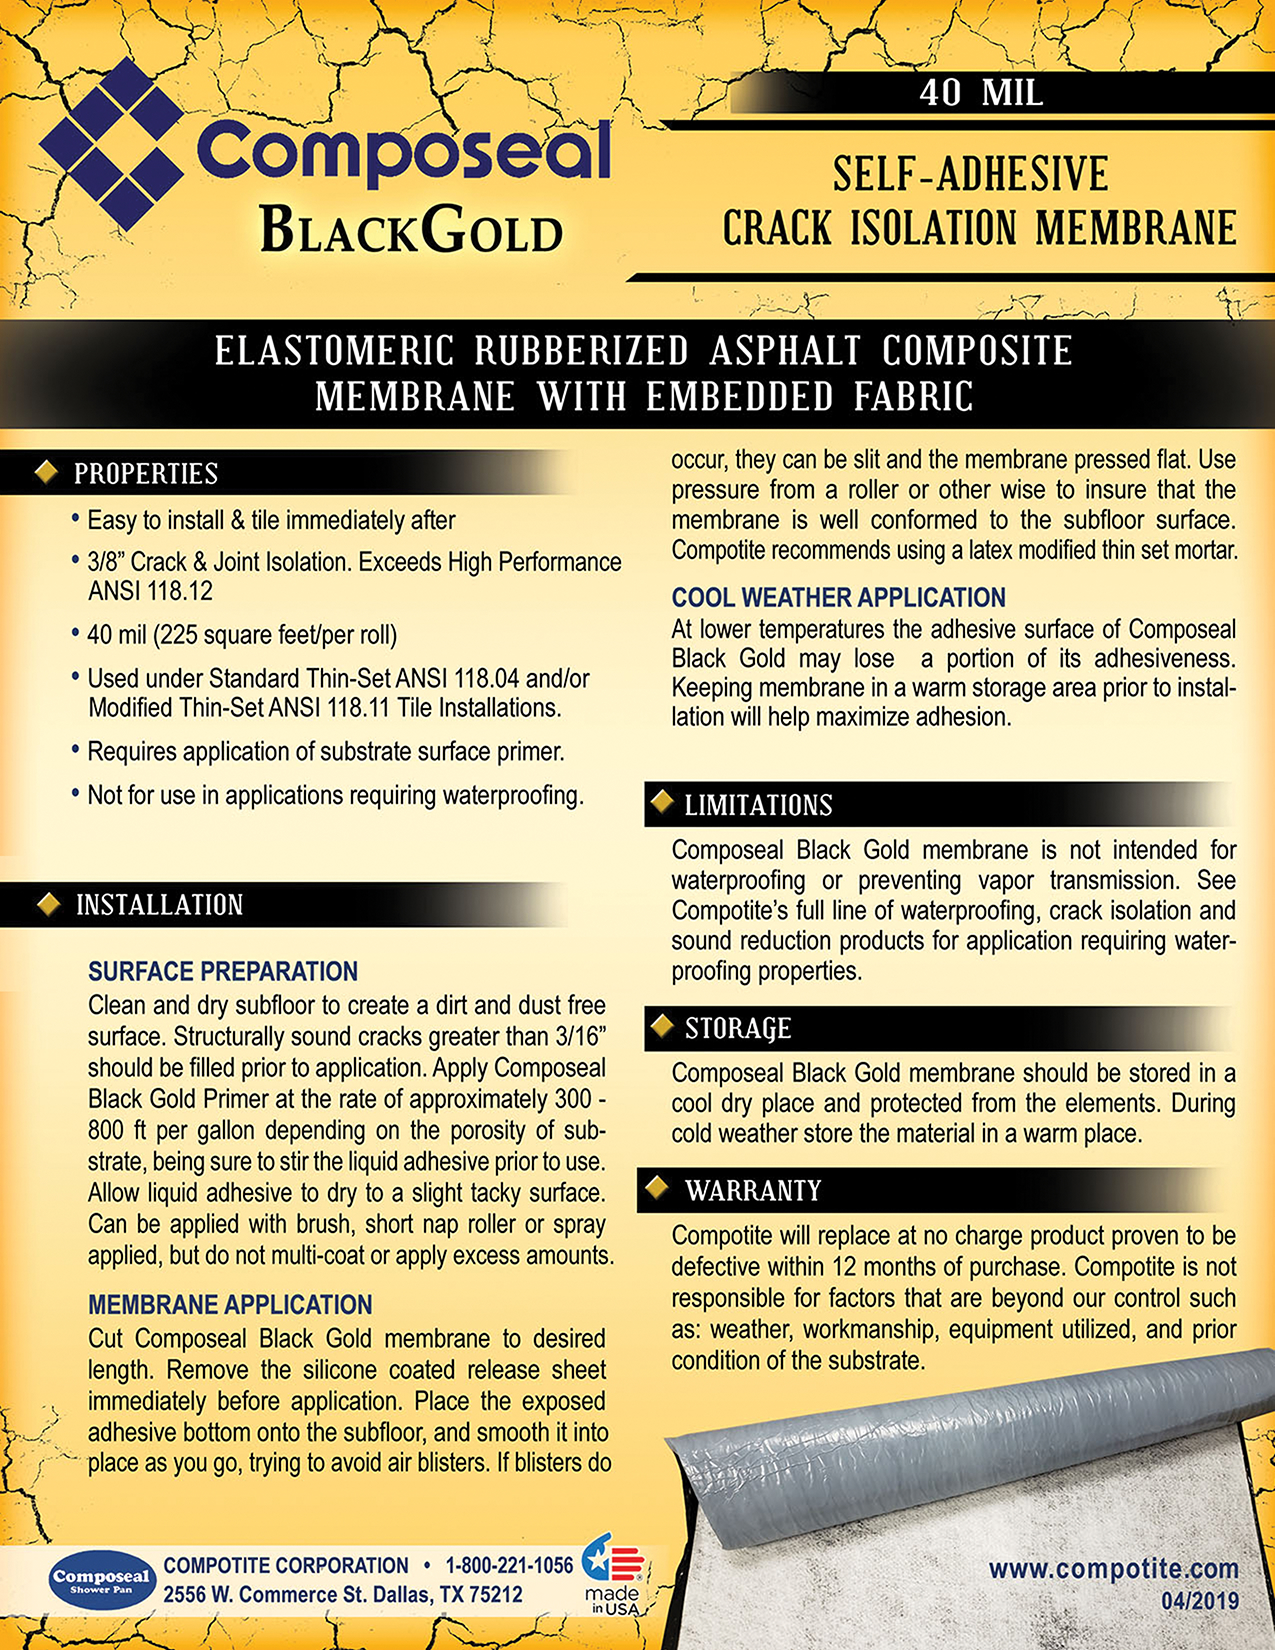 Composeal-Black-Gold